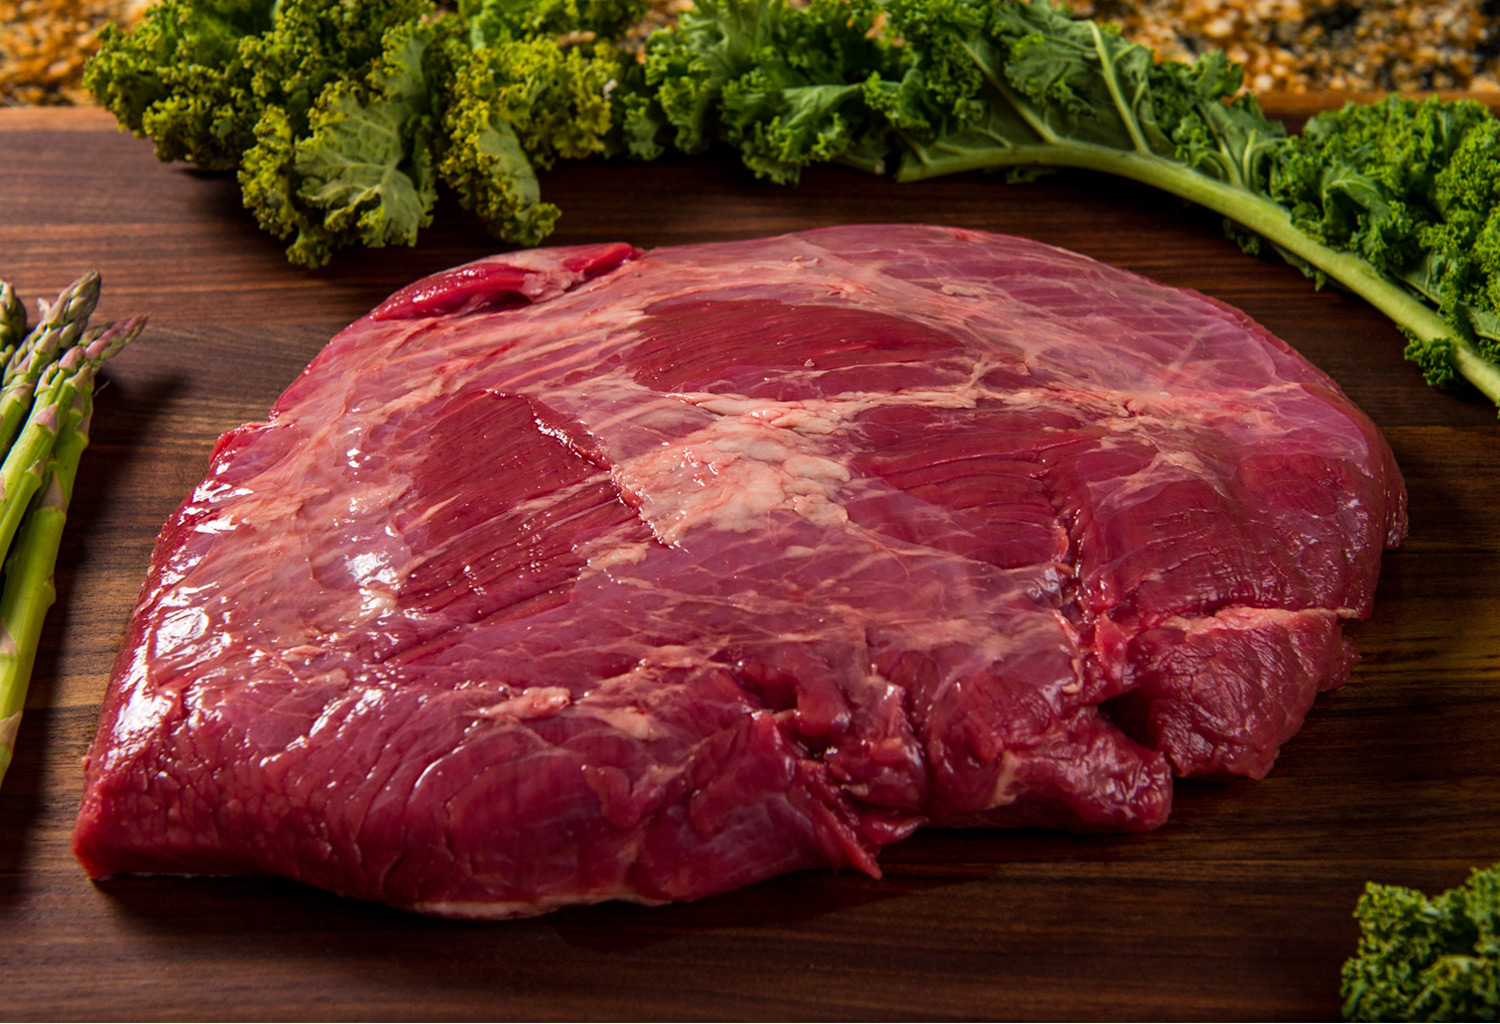 The Best Online Meat Supplier - Beck and Bulow